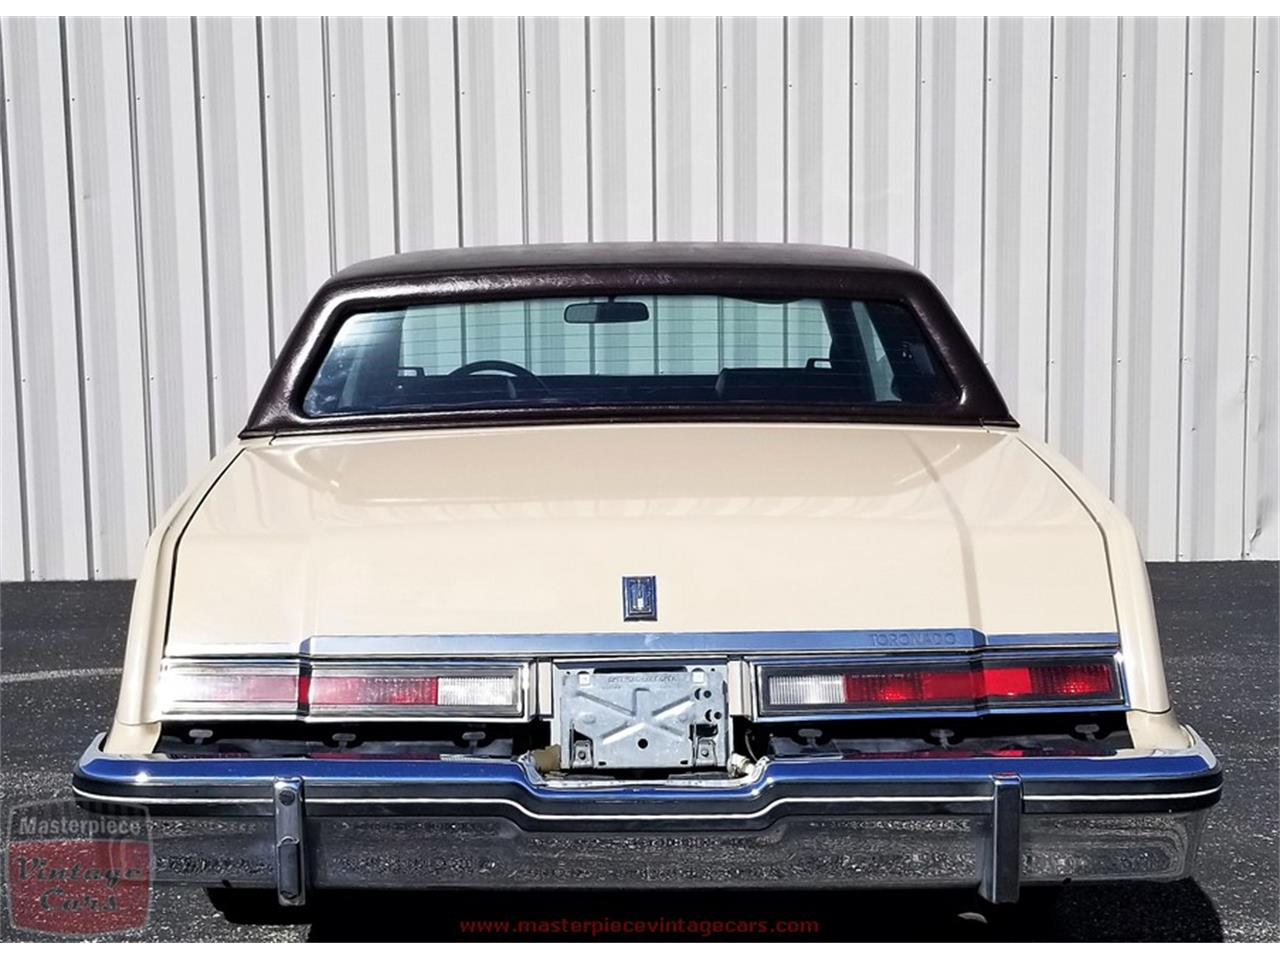 Large Picture of '85 Toronado - $5,950.00 Offered by Masterpiece Vintage Cars - Q4ZA